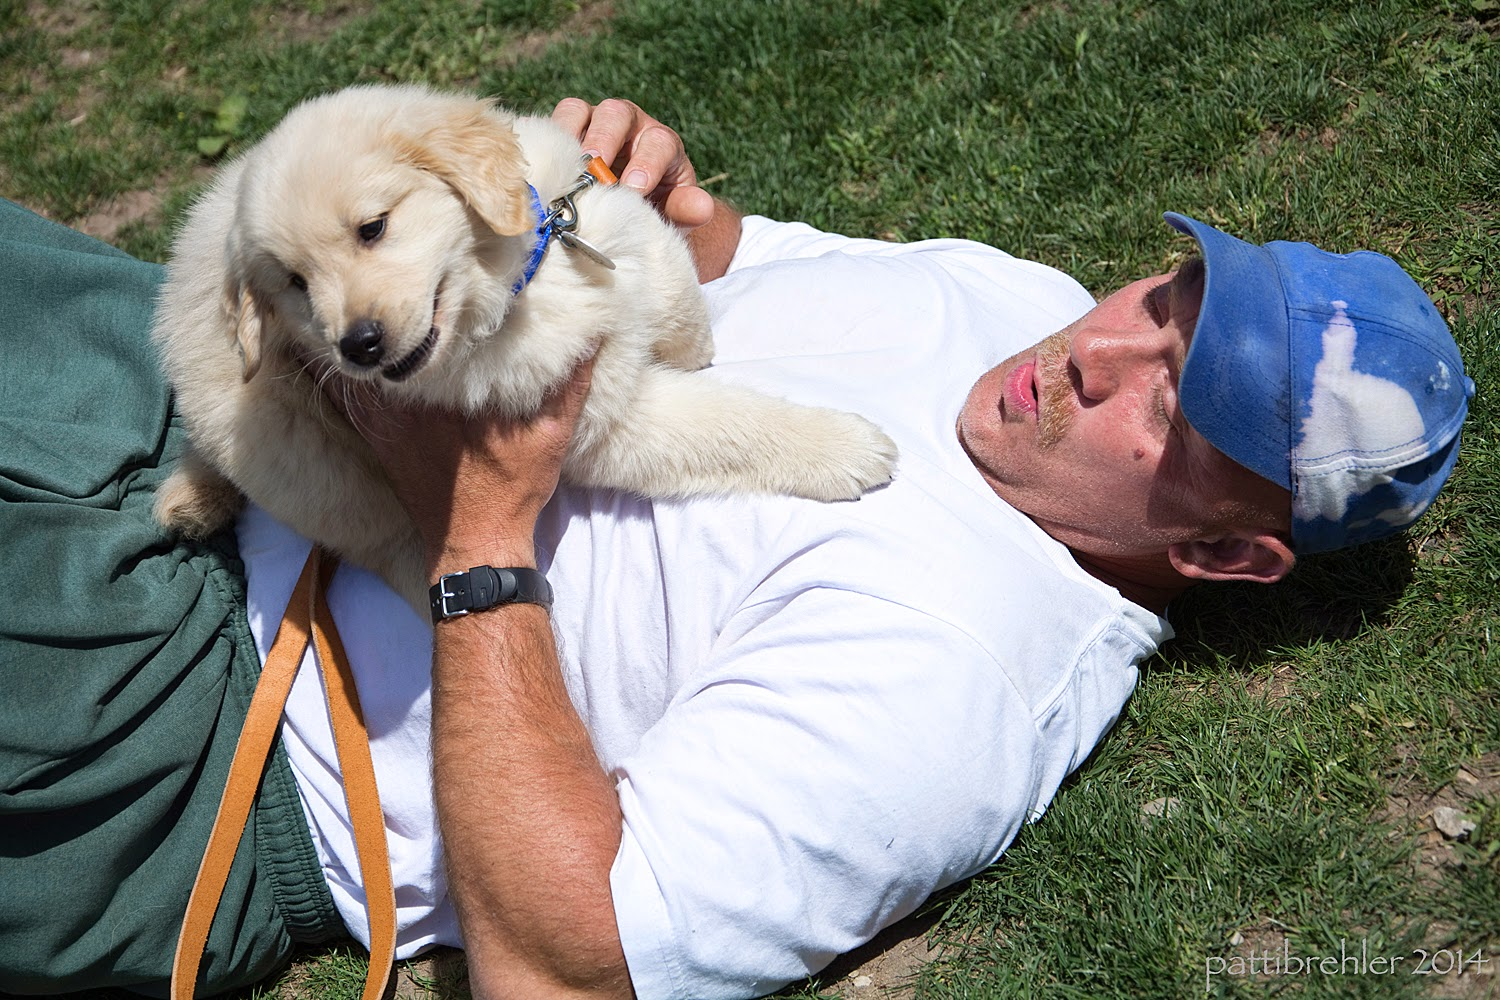 A man wearing green pants and a white t-shirt and blue baseball cap is lying on the grass on his back. He is holding a small golden retriever puppy on his chest with his hands, the puppy looks like it is squirming. The man has a surprised look on his face.